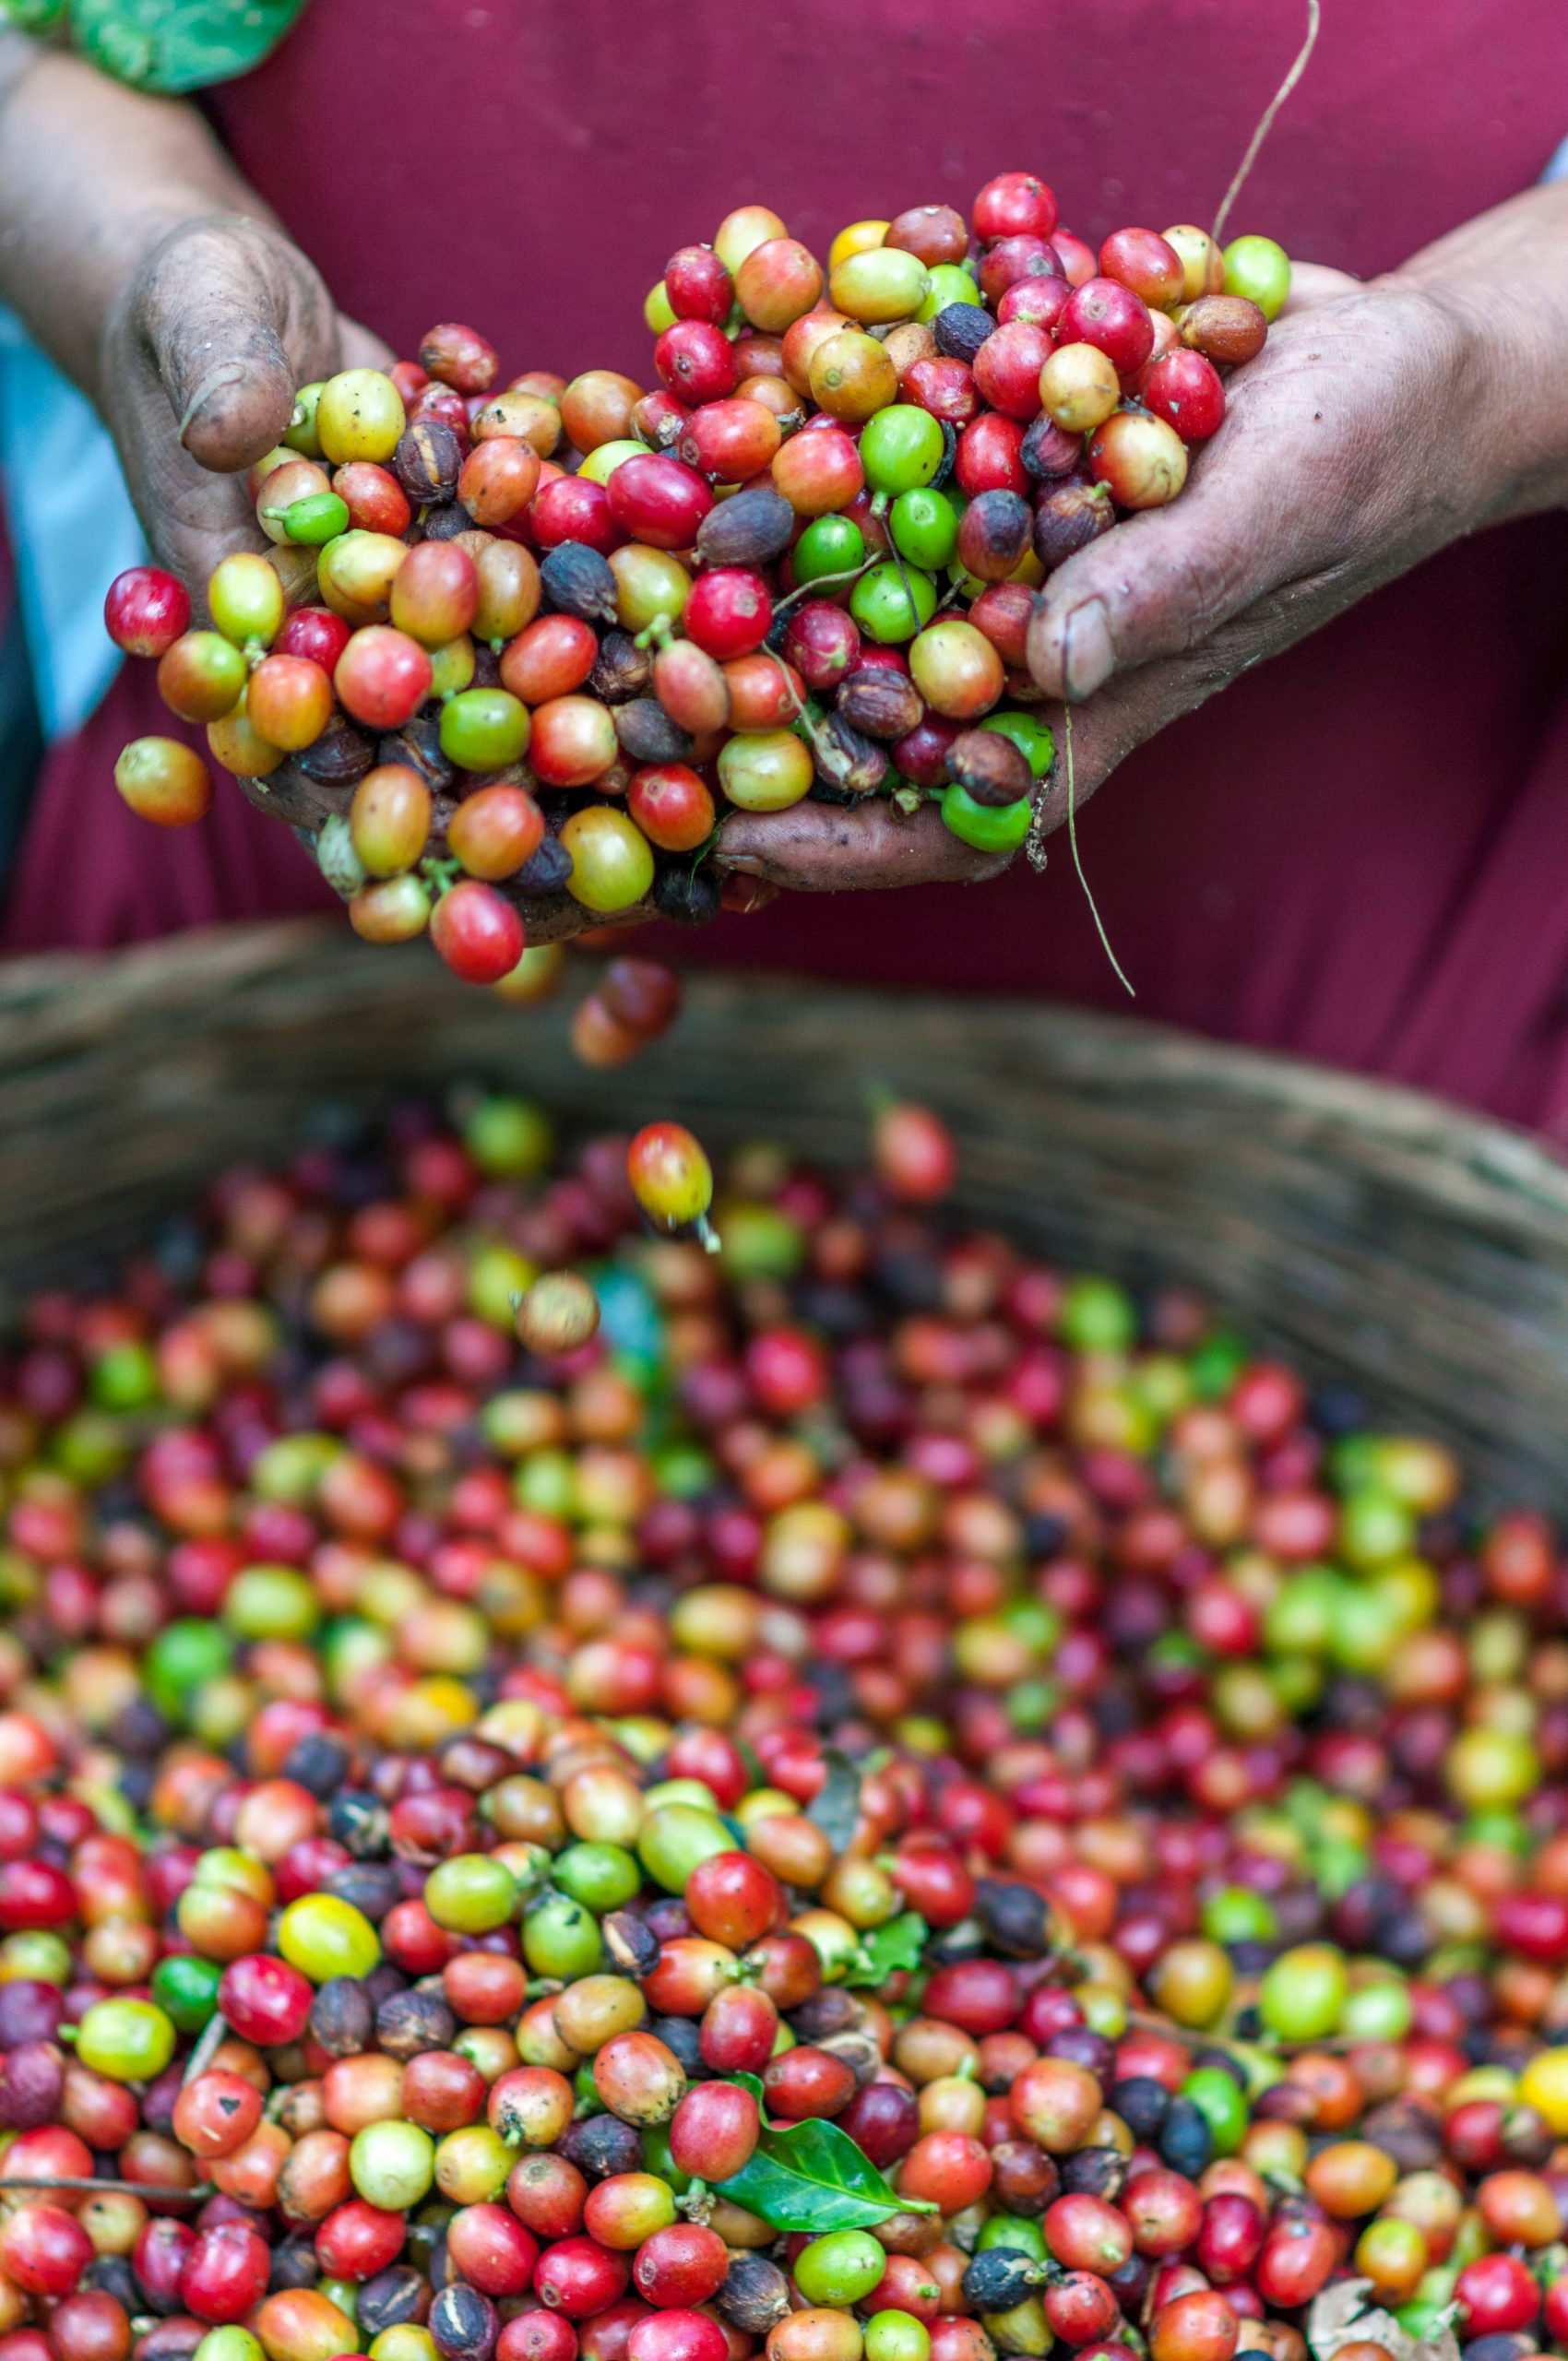 Biological Threats Loom Large for Local Coffee Farmers, Data Analysis Could Be the Answer